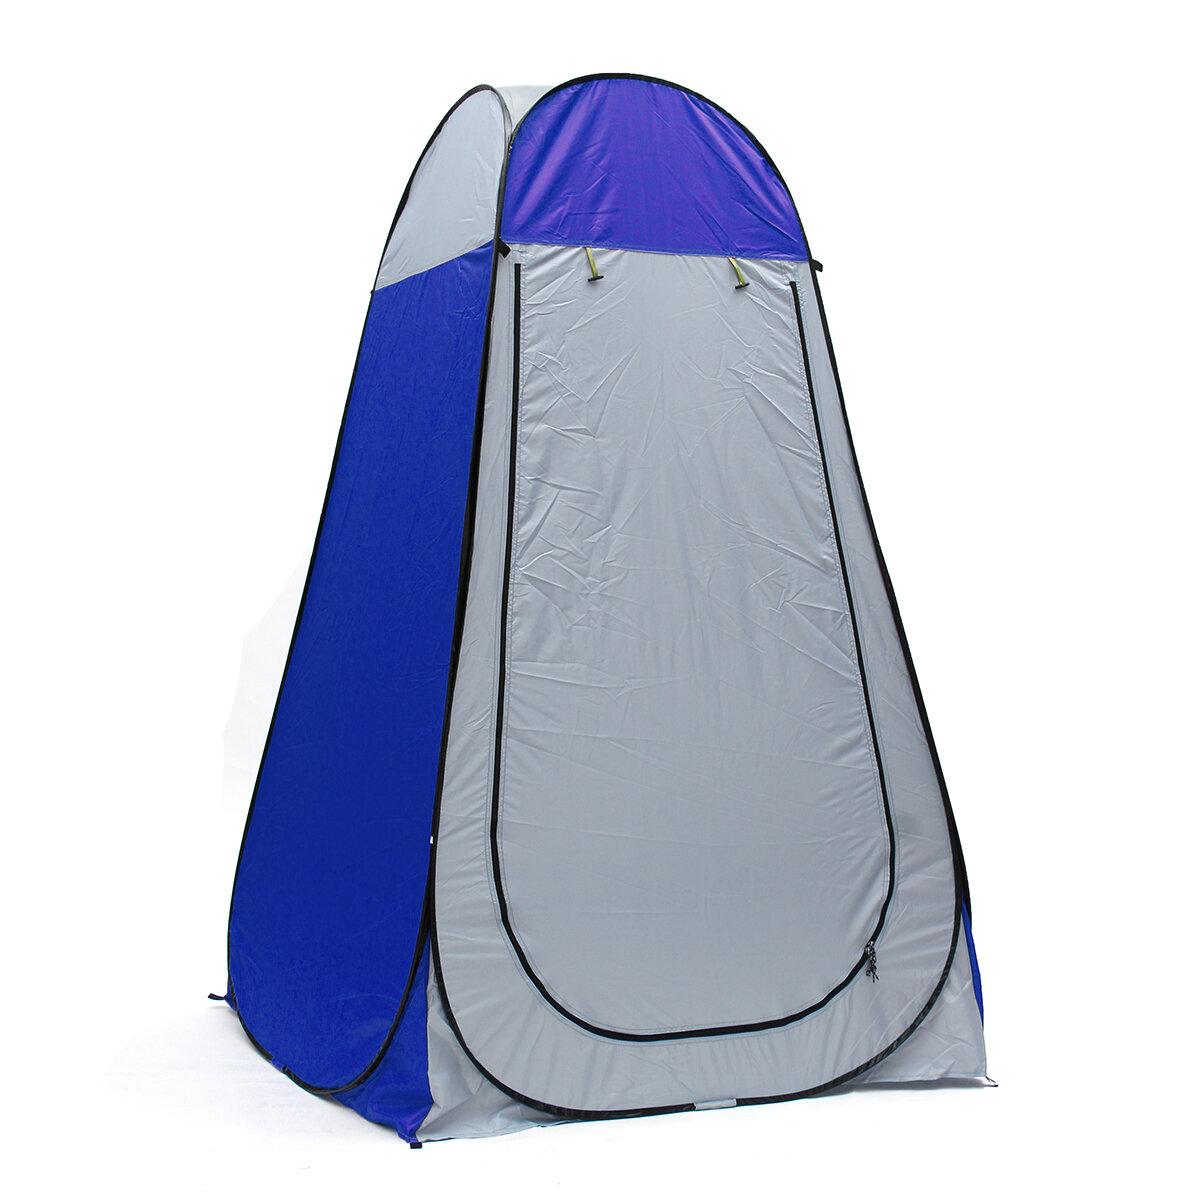 Automatic Speed Open Foldable Single Person Meditation Yoga Bed Tent Outdoor Beach Fishing Outdoor Camping Tent - 4